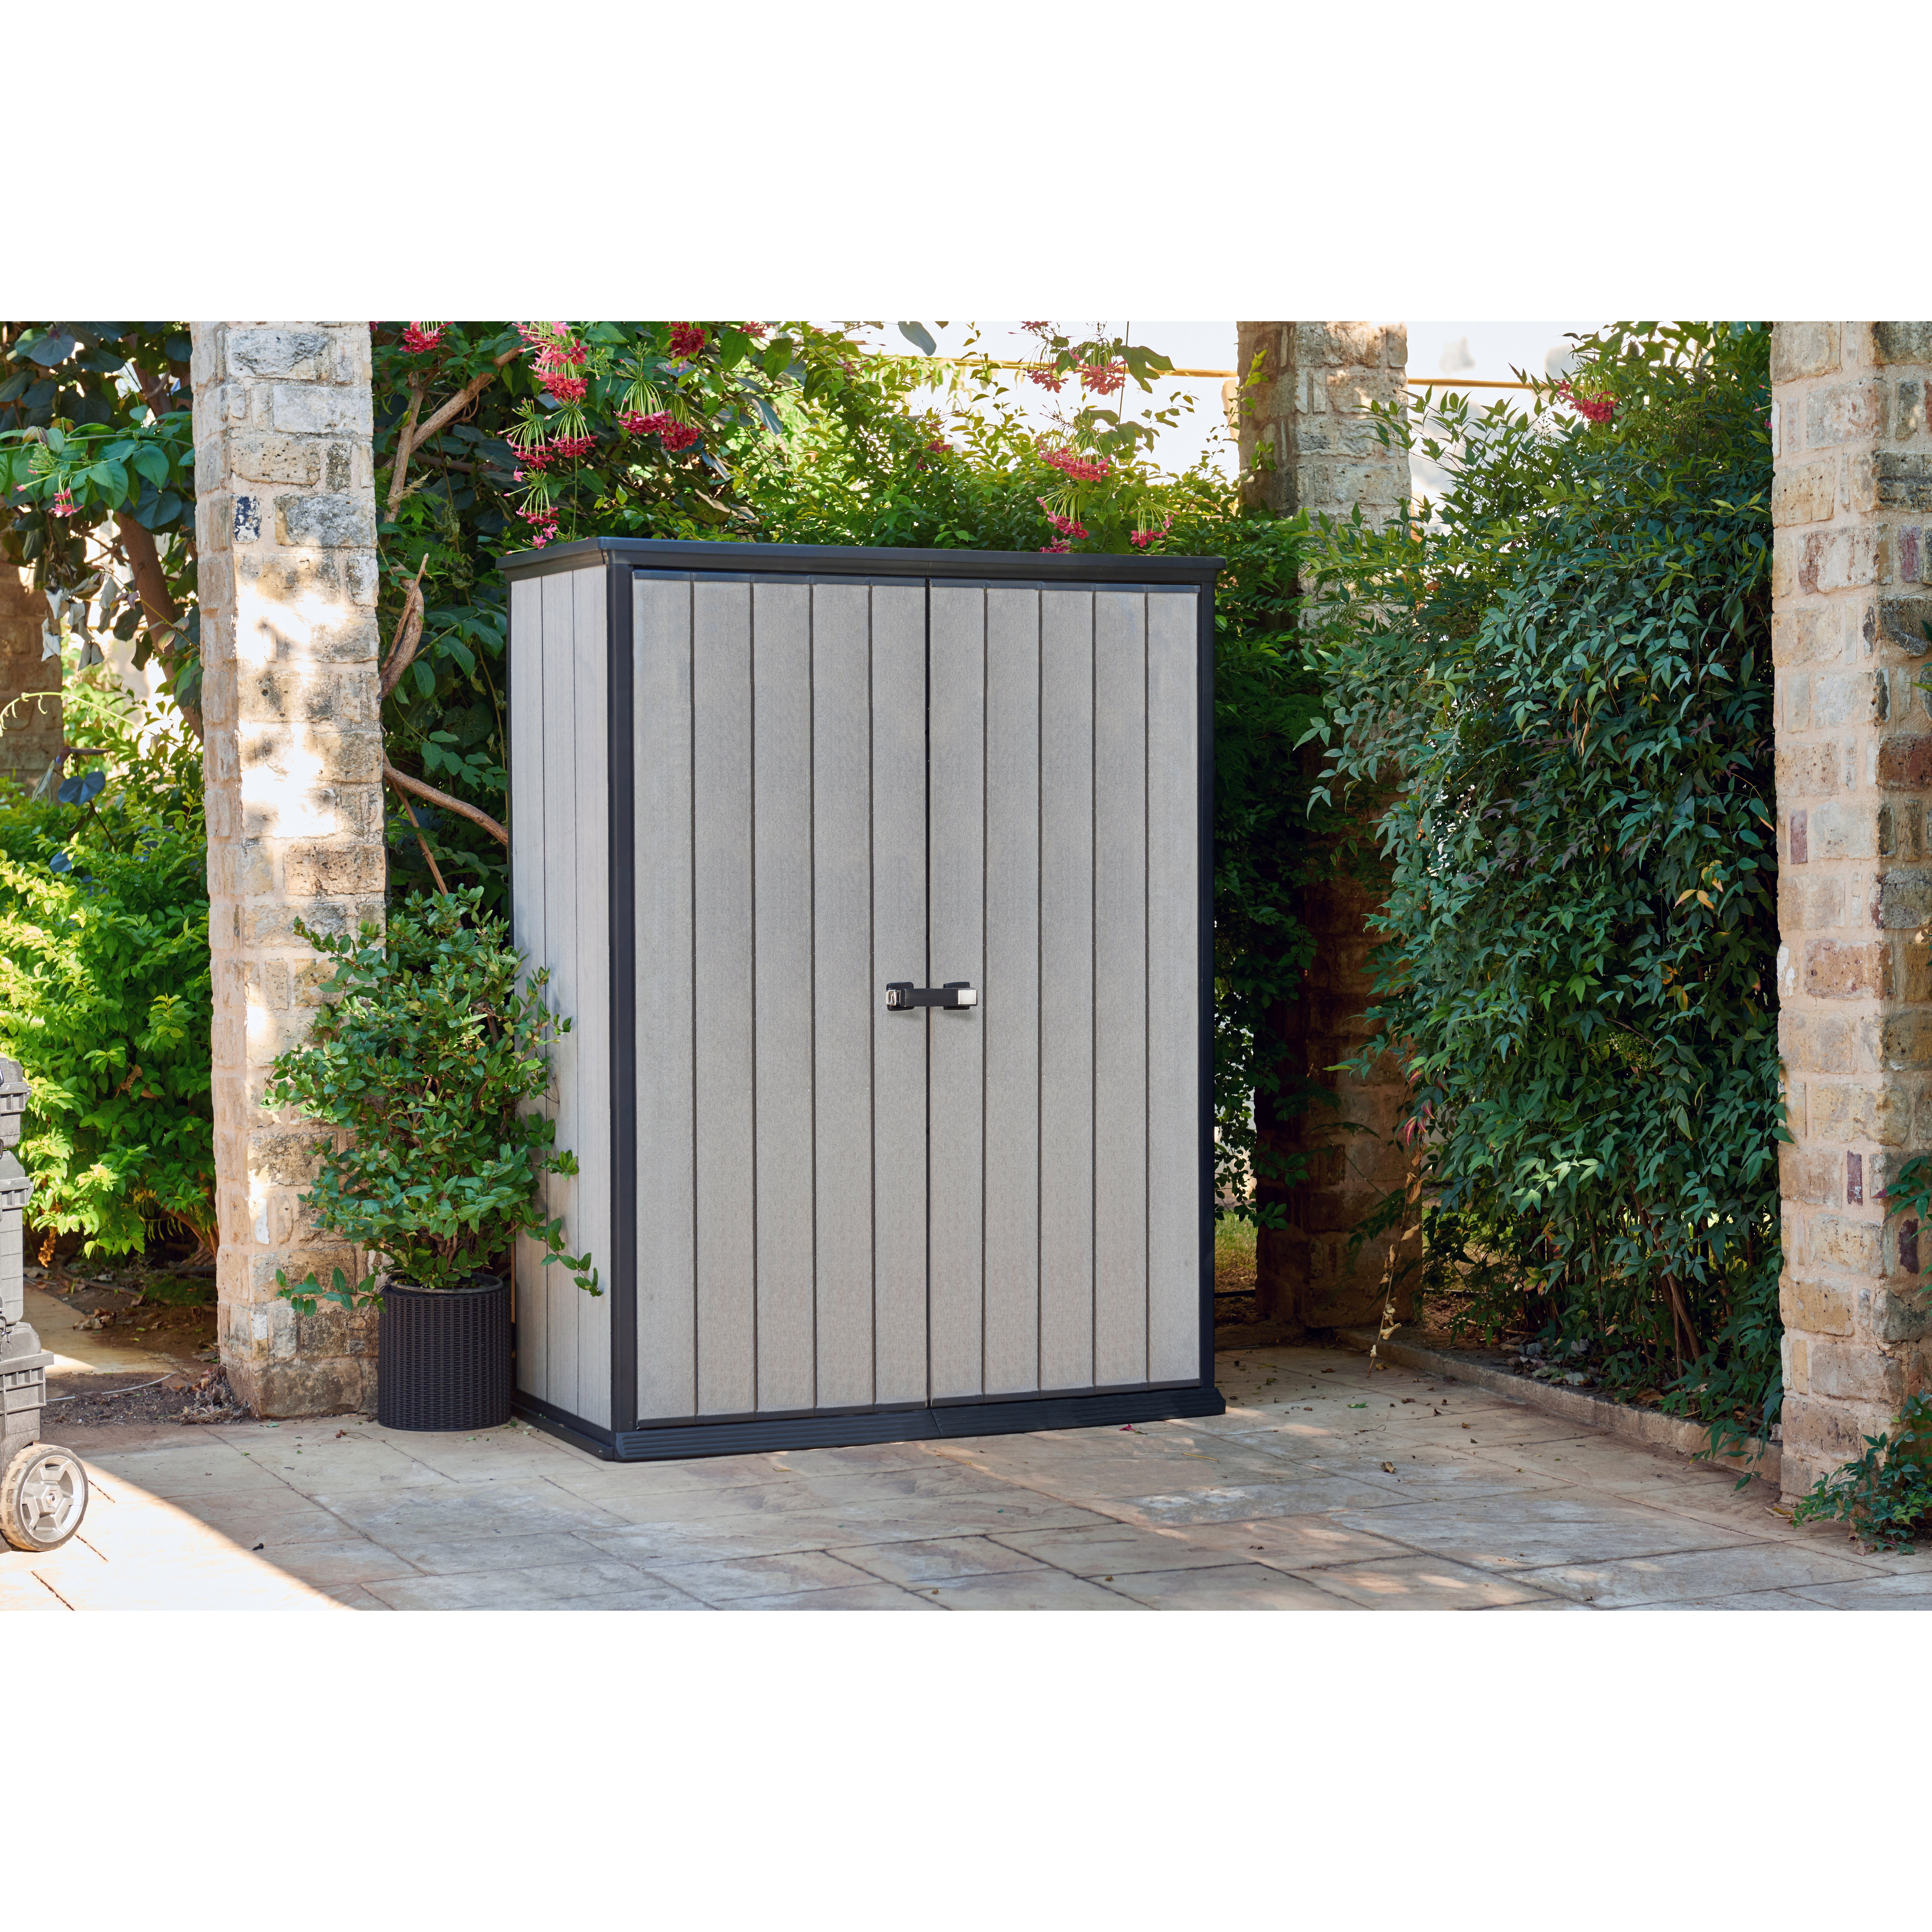 Keter high store 4 ft x 2 ft resin storage shed for Caseta pvc exterior